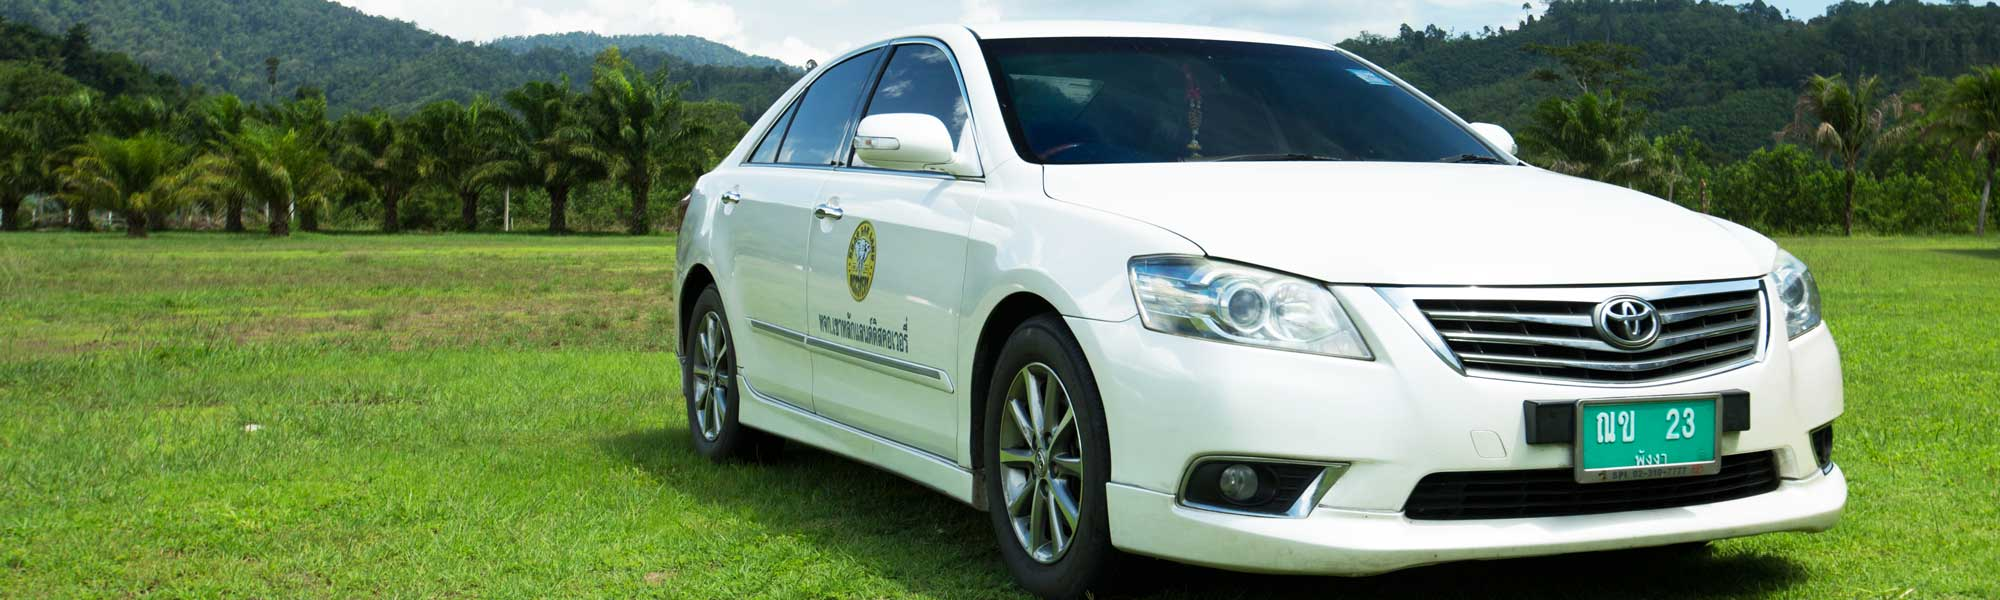 VIP transport khao lak land discovery